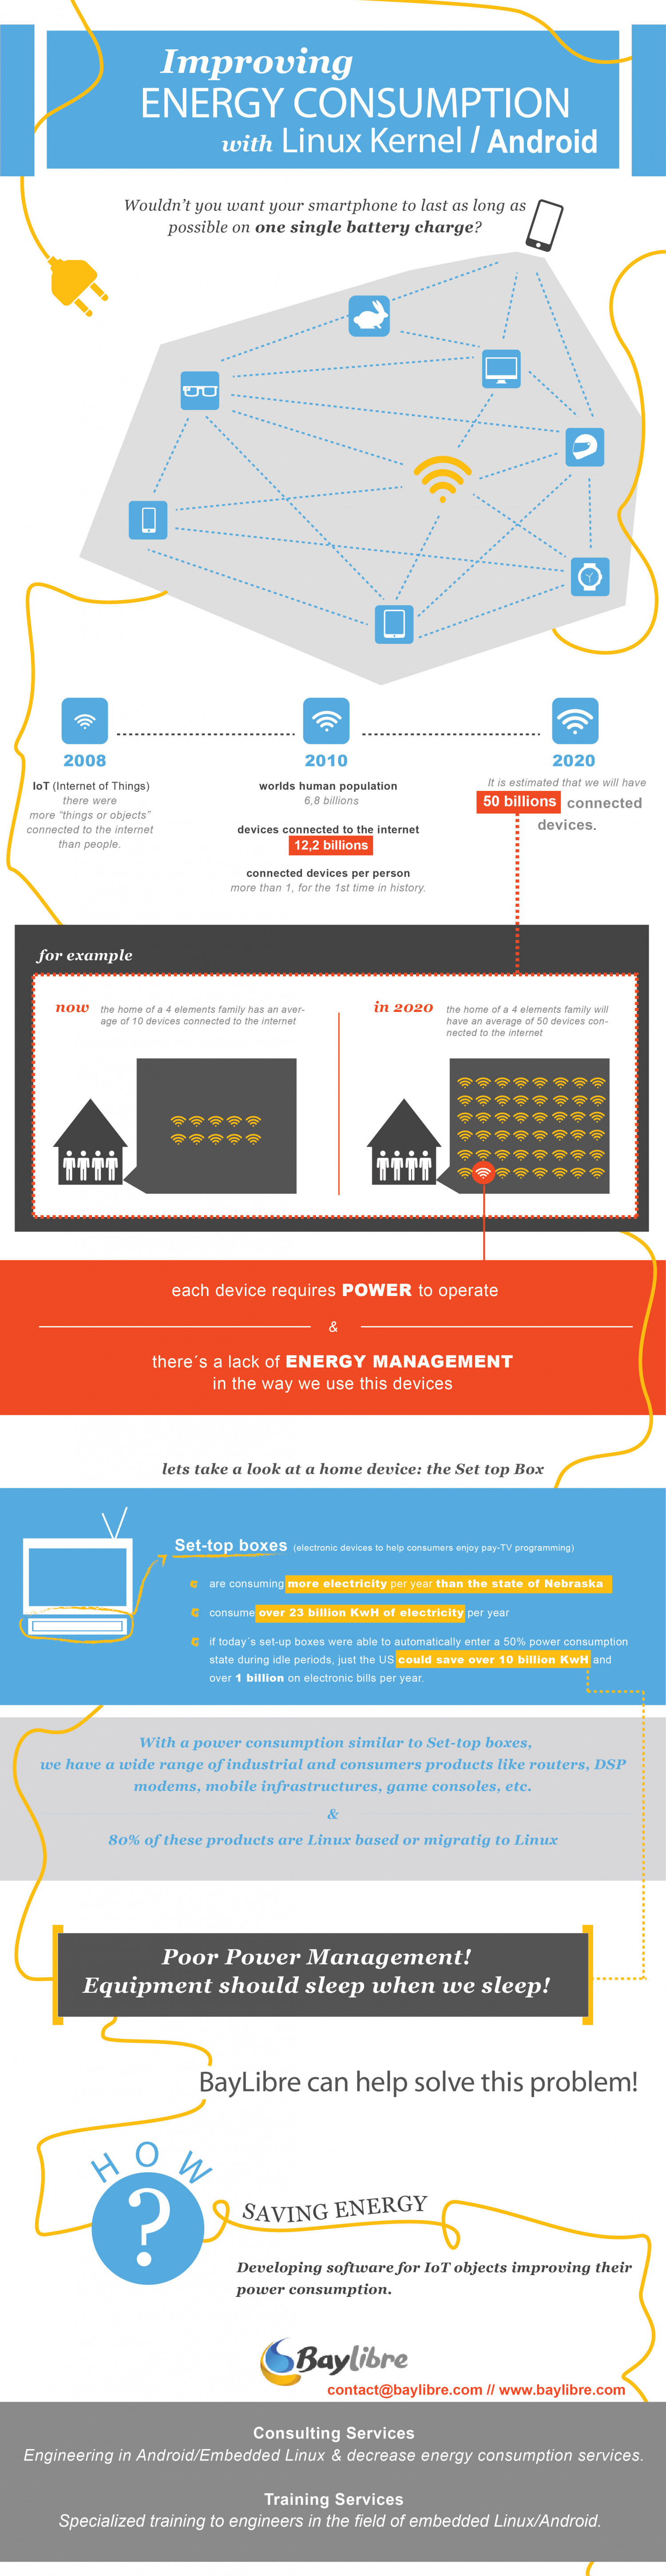 Improving Energy Consumption with Linux Kernel/ Android Infographic